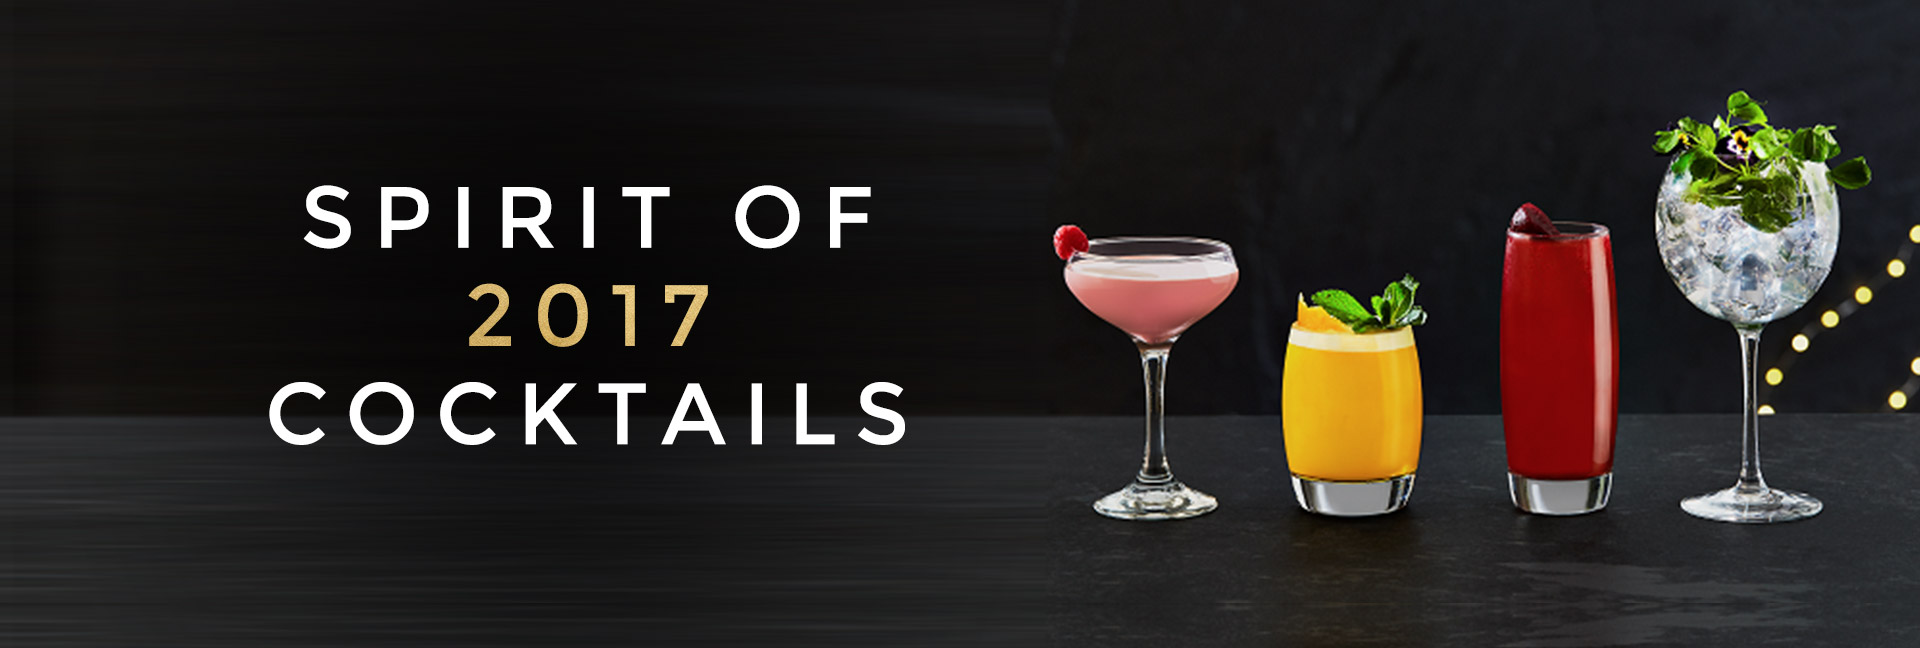 Spirit of 2017 cocktails at All Bar One Stratford Upon Avon